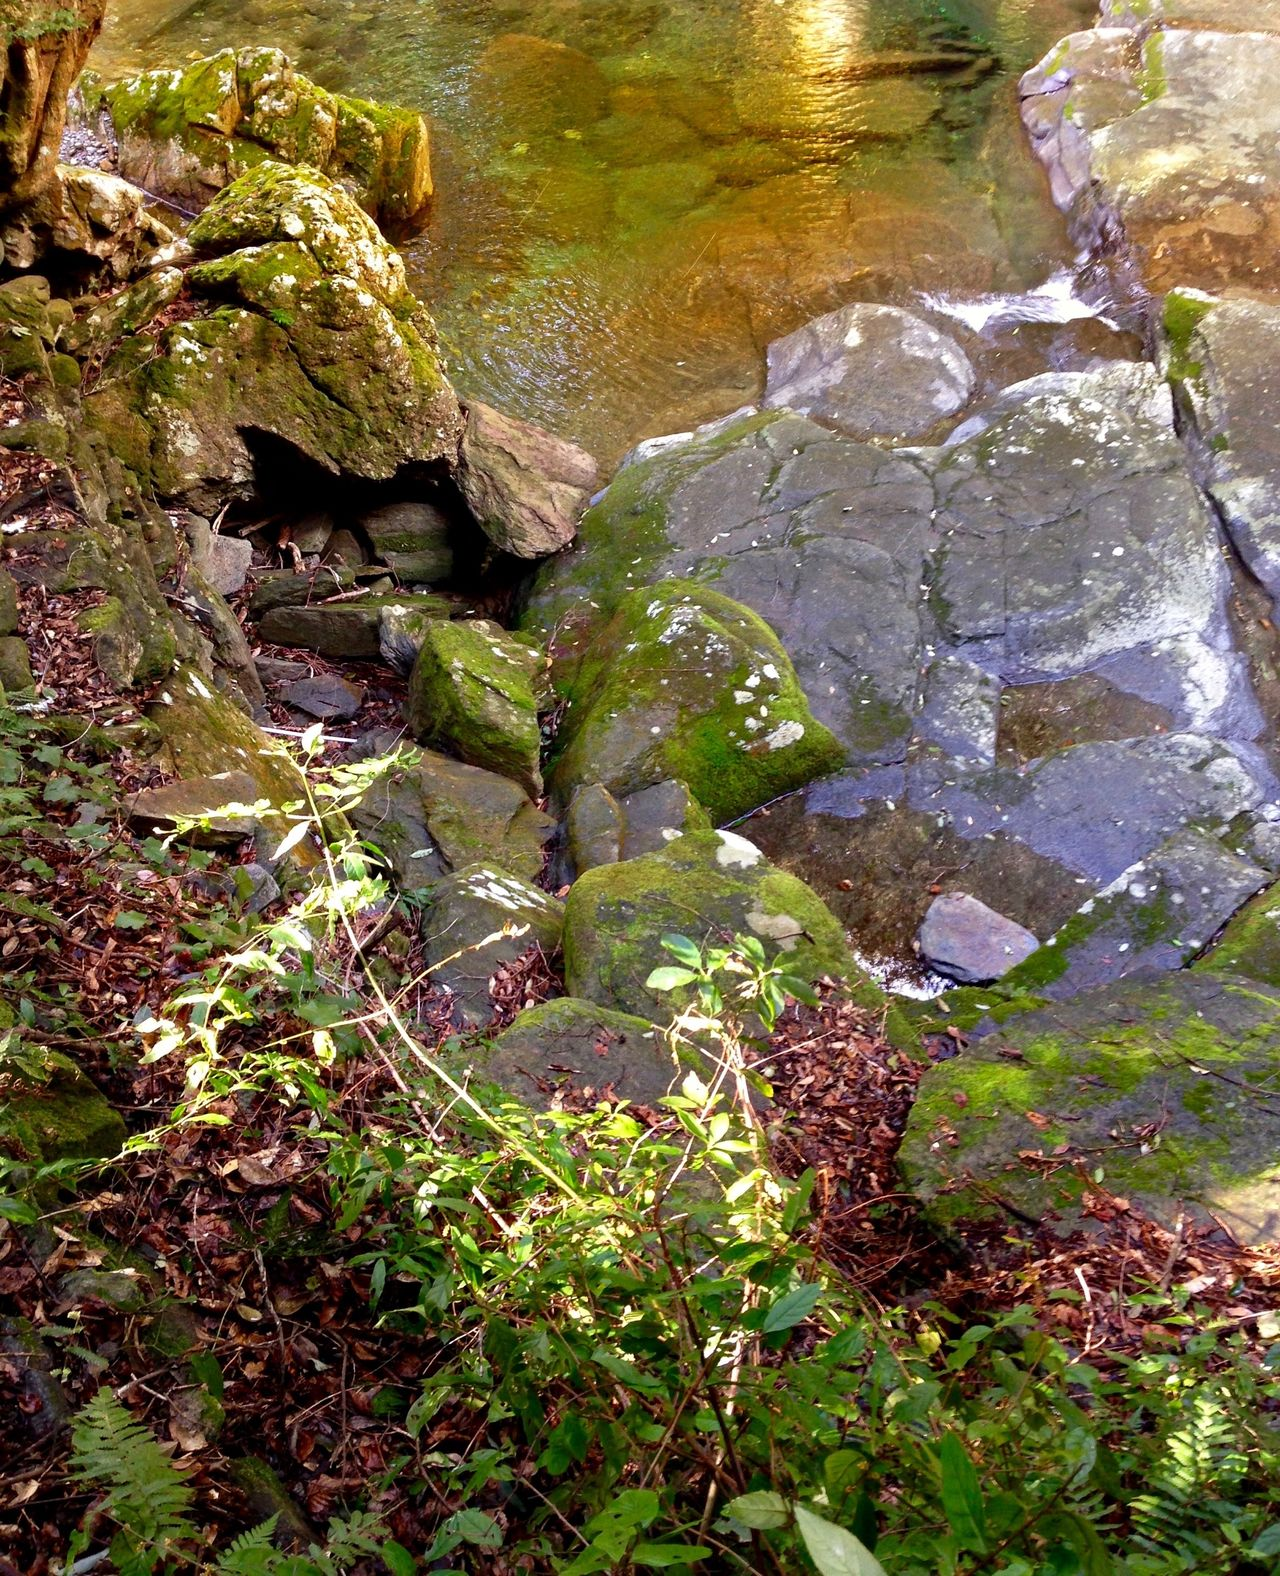 Creek Stream - Flowing Water Creekside Creekside Trail Creekside Photography Creek Water 💦 Rock Rock Formation Nature Water Beauty In Nature No People Tranquility Plant Scenics Outdoors Leaf Growth Day